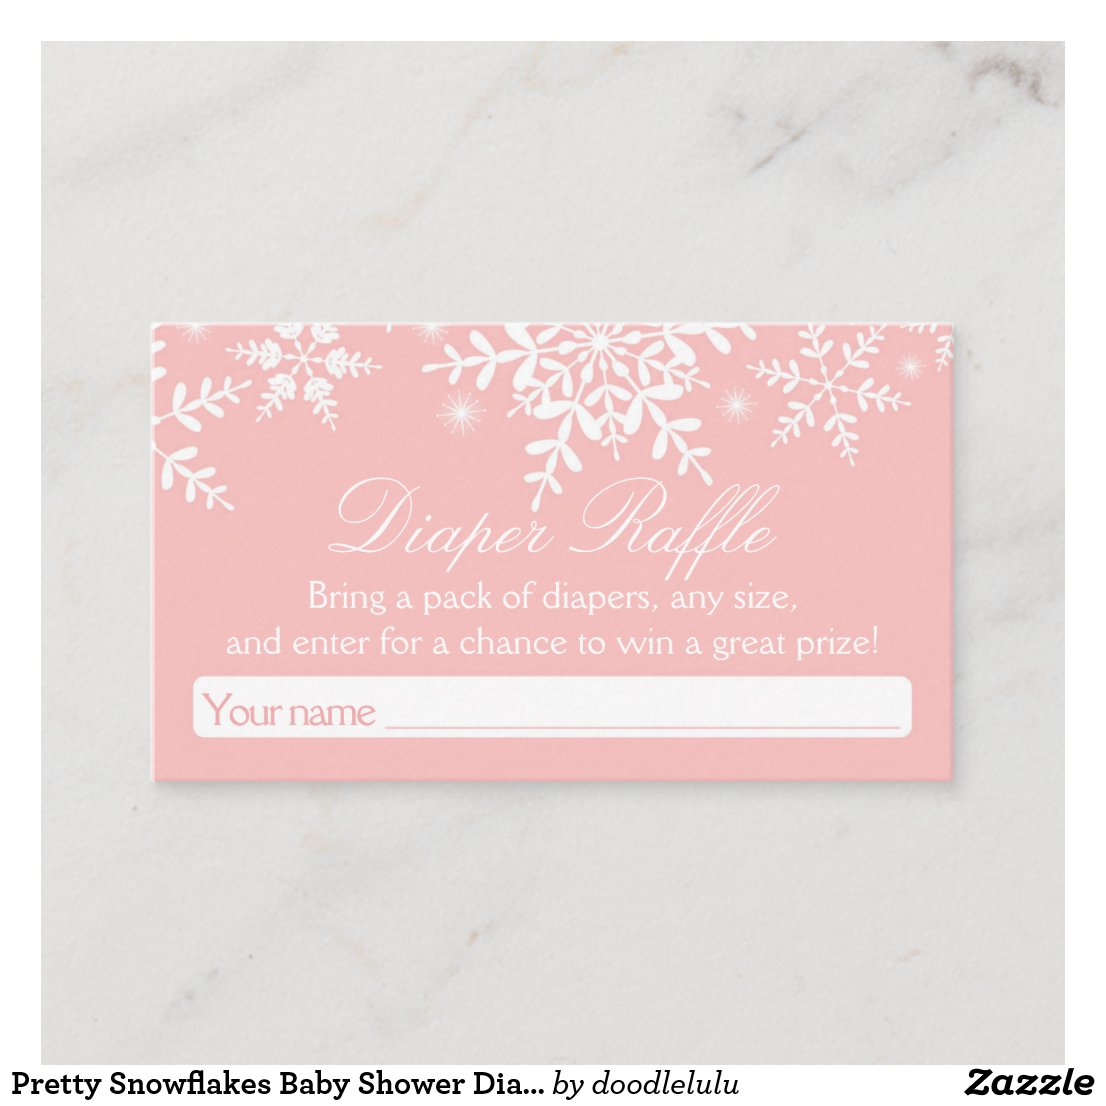 Pretty Snowflakes Baby Shower Diaper Raffle Ticket Enclosure Card